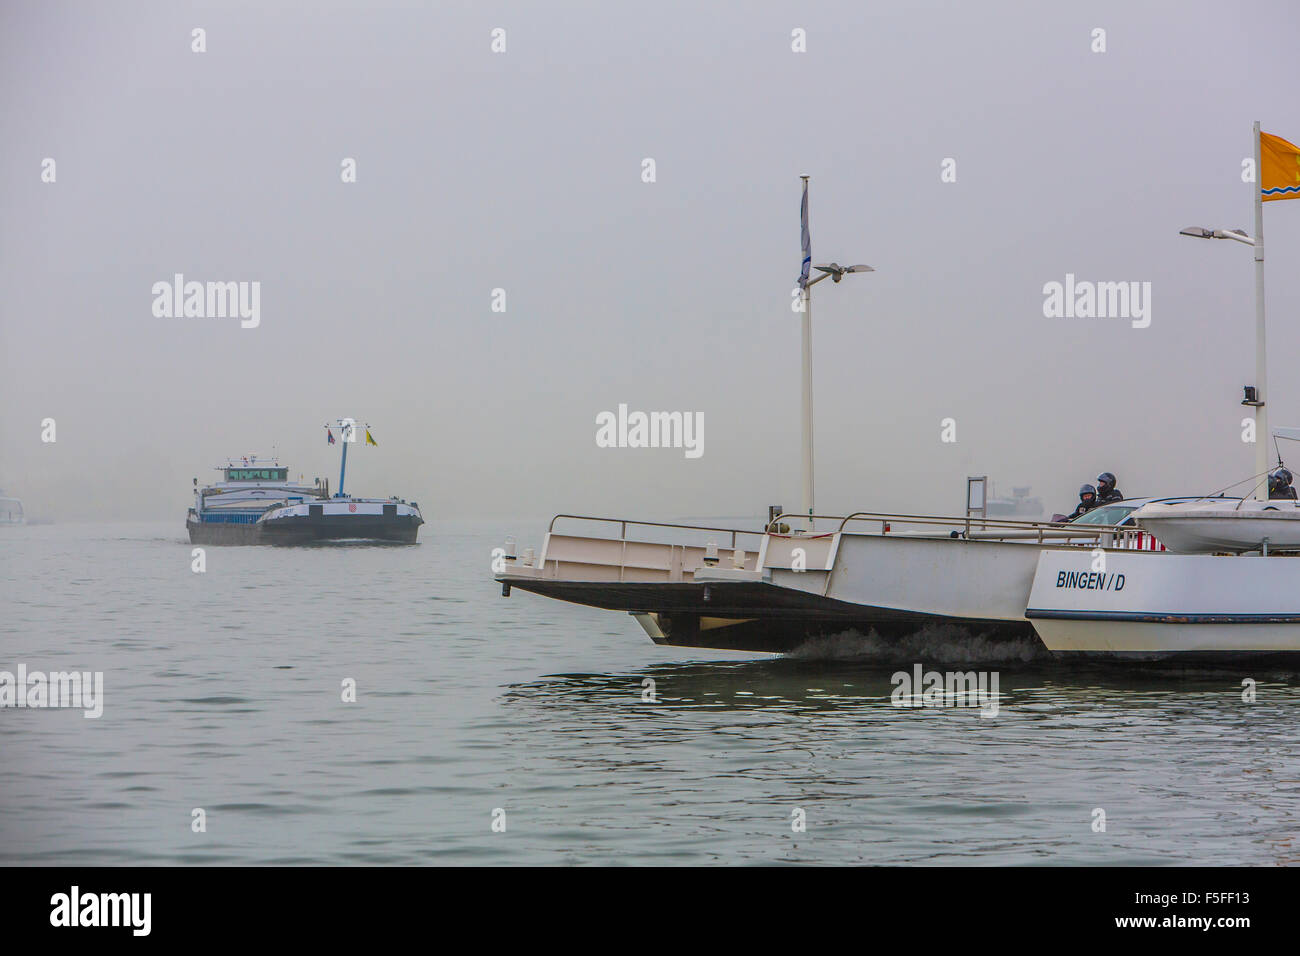 River Rhine, near Bingen, Germany, fog, low visibility, car ferry boat, freight ship, - Stock Image